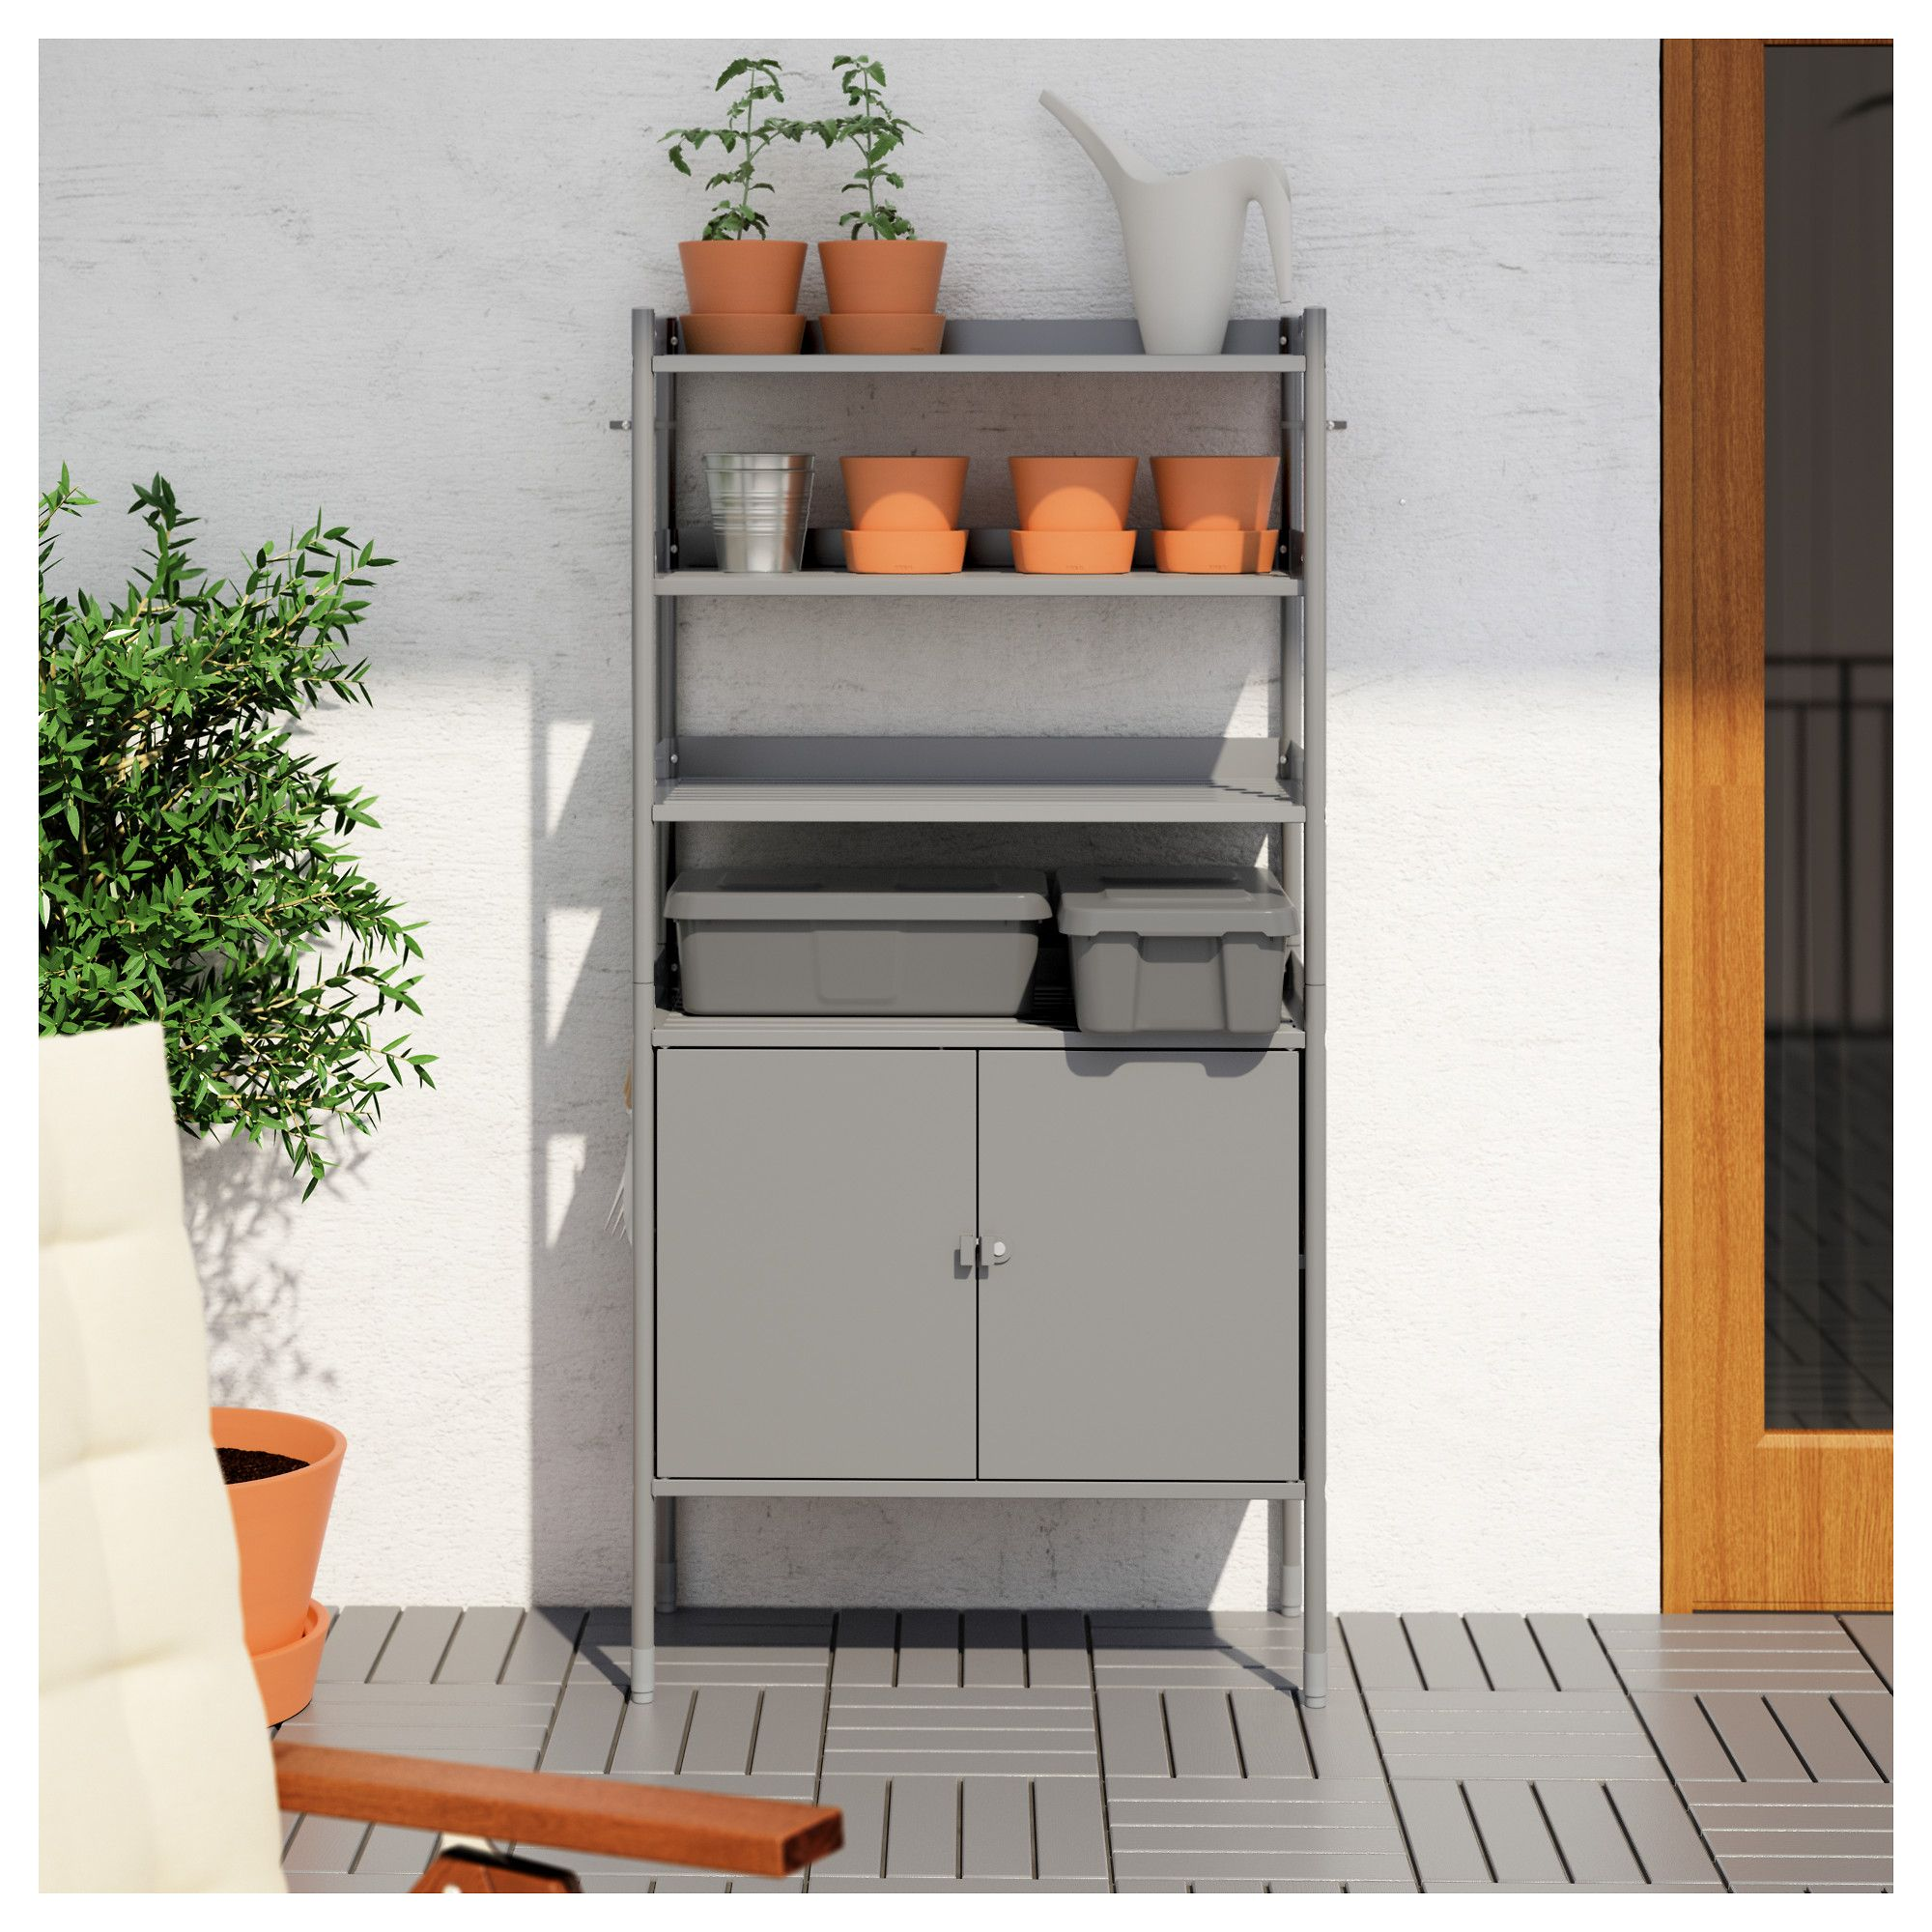 Hind Cabinet W Shelving Unit In Outdoor Grey 78×158 Cm Shelving  # Ikea Odda A Roulette